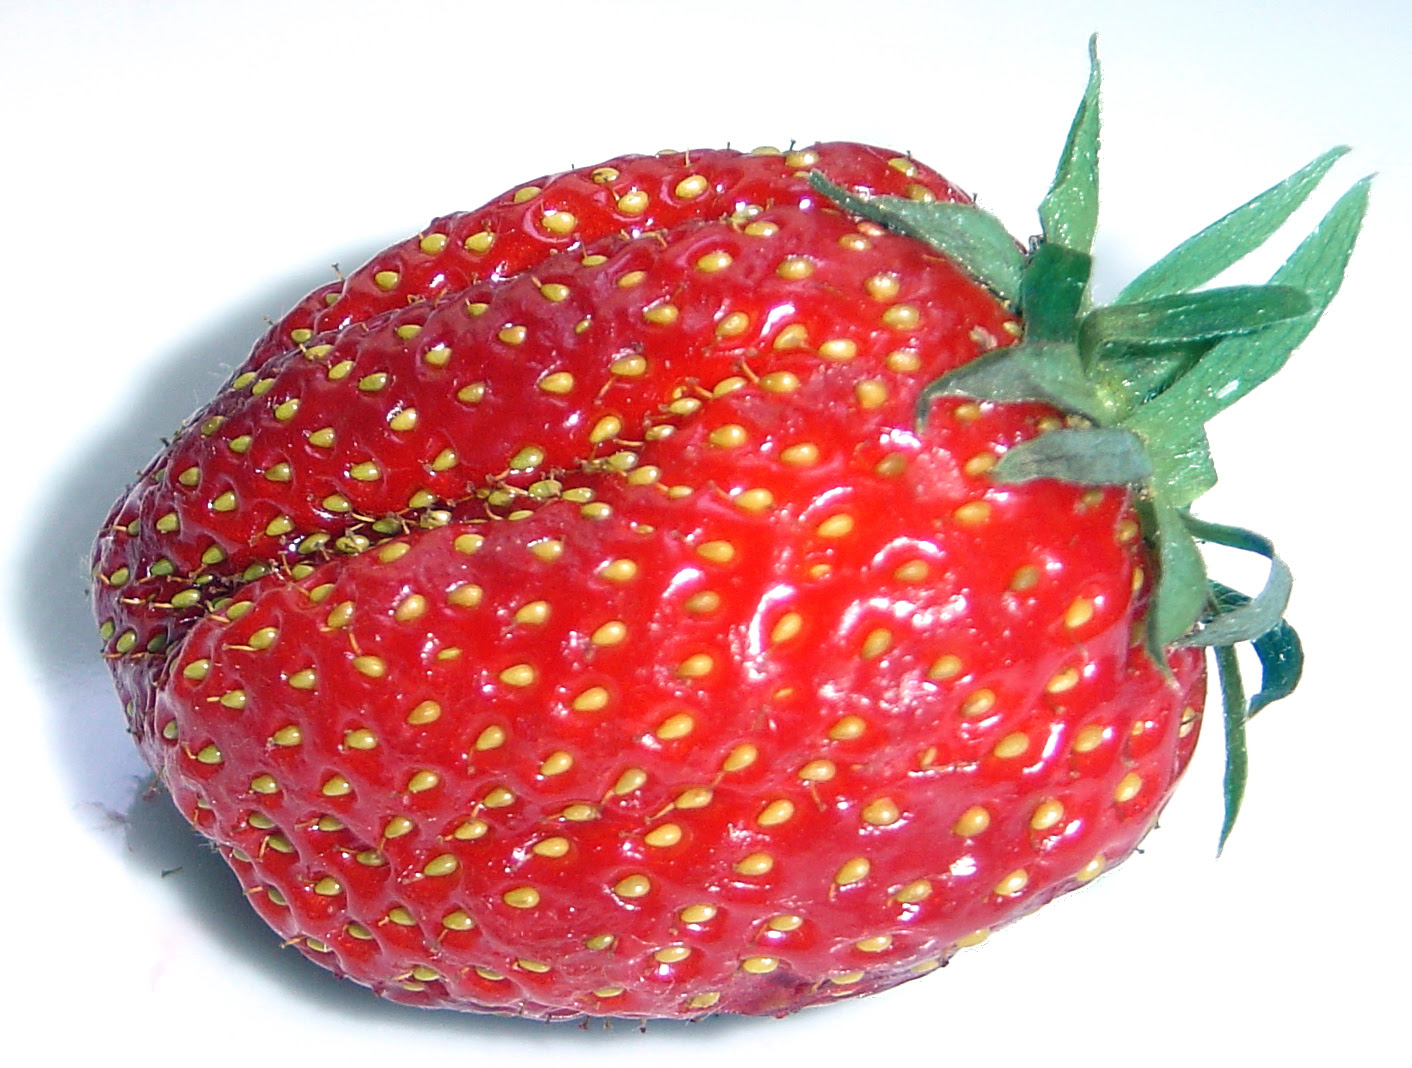 large bright red juicy strawberry with visible ovaries